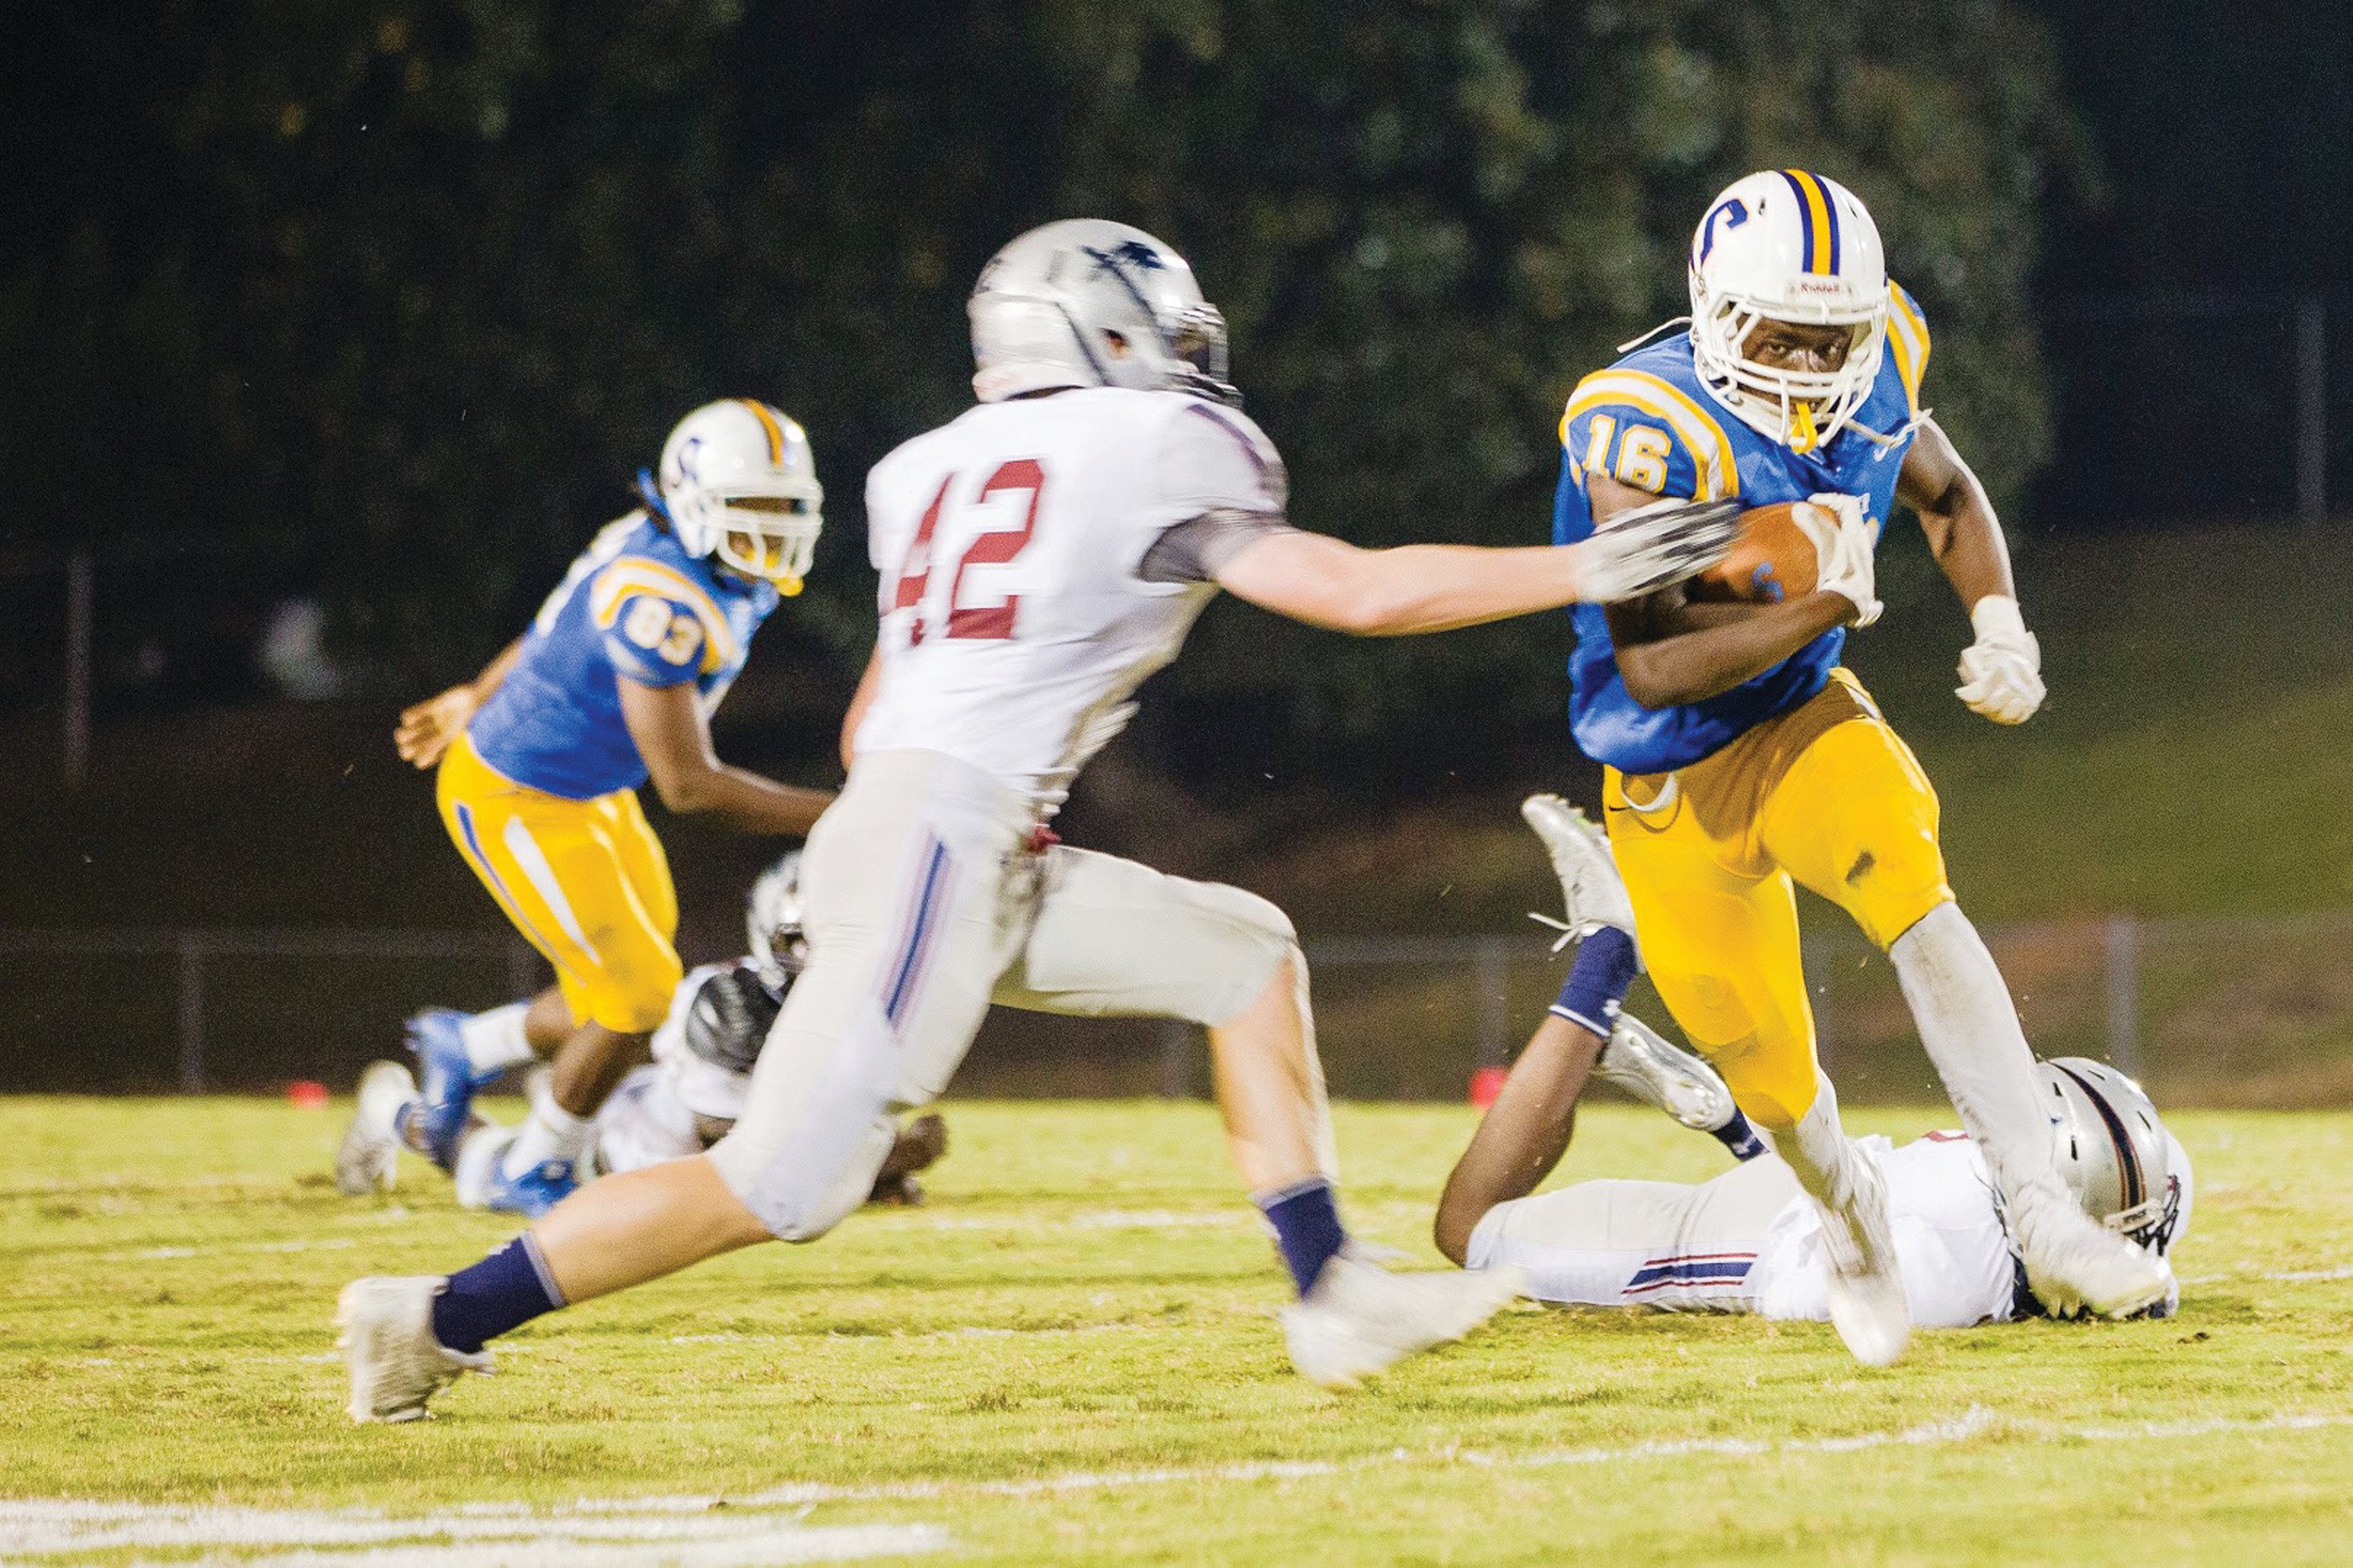 Sumter running back Jonathan Henry (16) runs the ball during the Gamecocks' 35-7 victory over White Knoll in the opening round of the 5A state playoffs on Friday at Memorial Stadium. Henry rushed for 203 yards and two touchdowns.